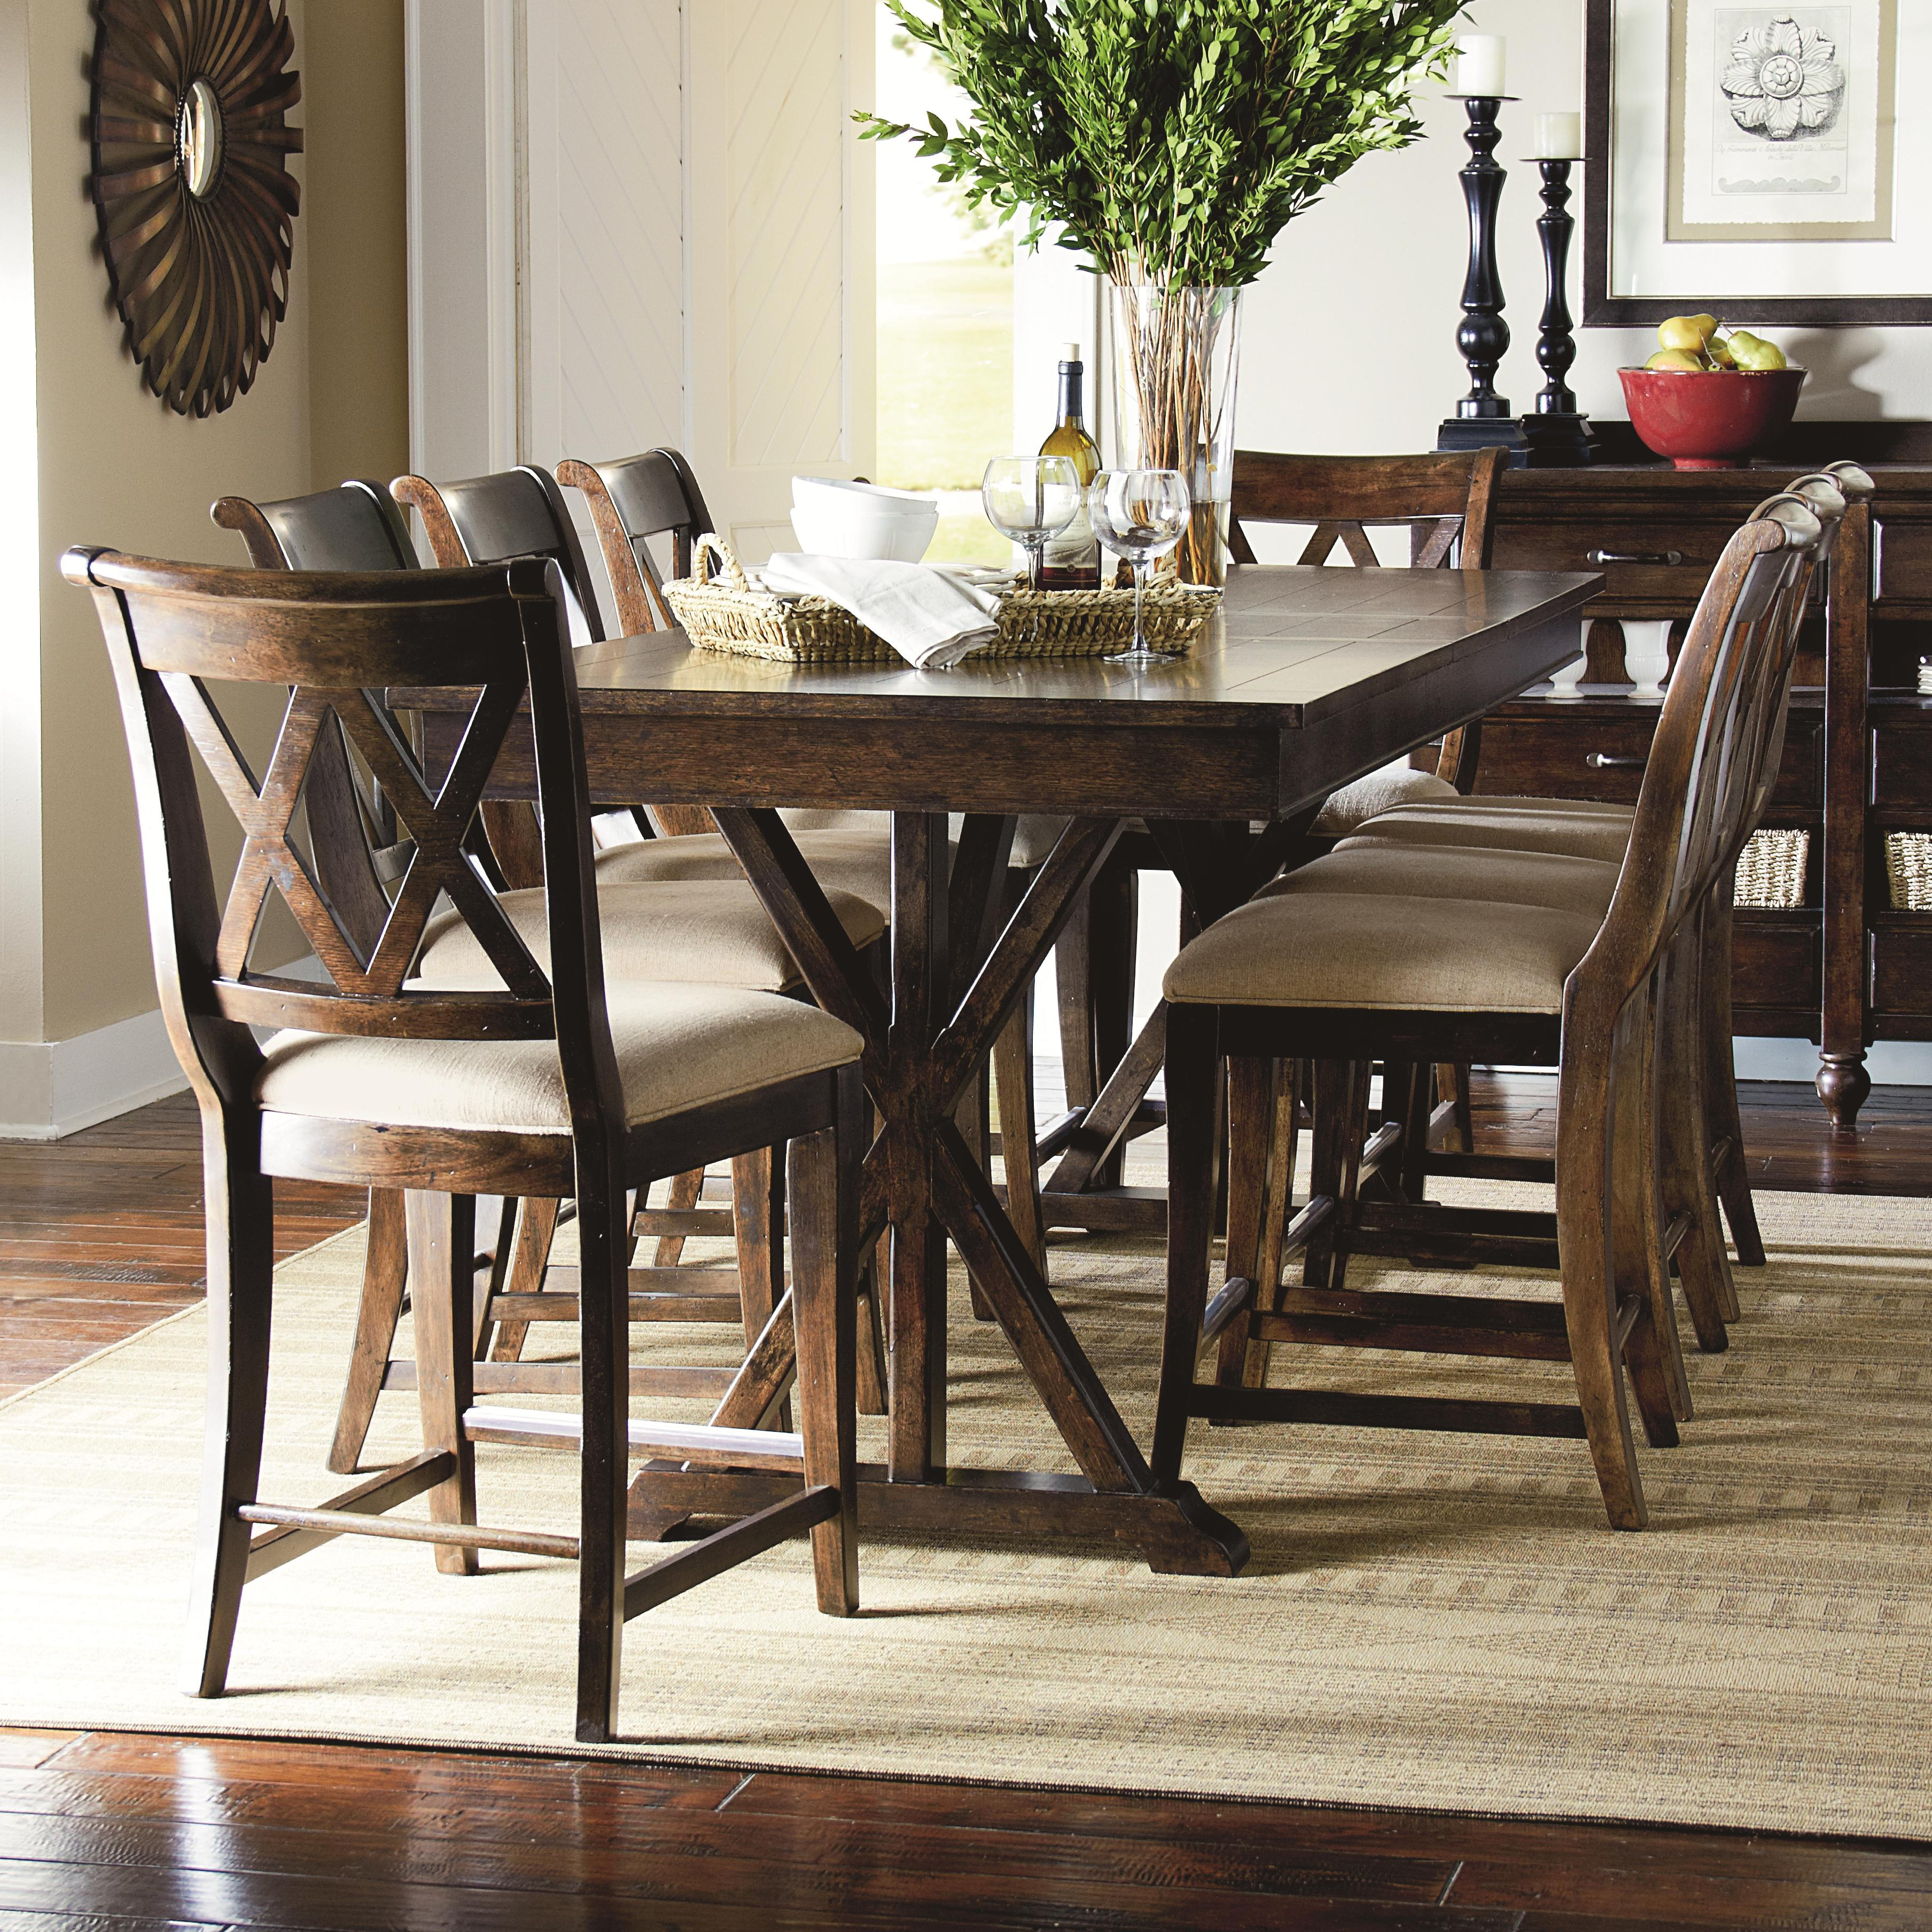 9 Piece Pub Dining Set With X Shaped Details